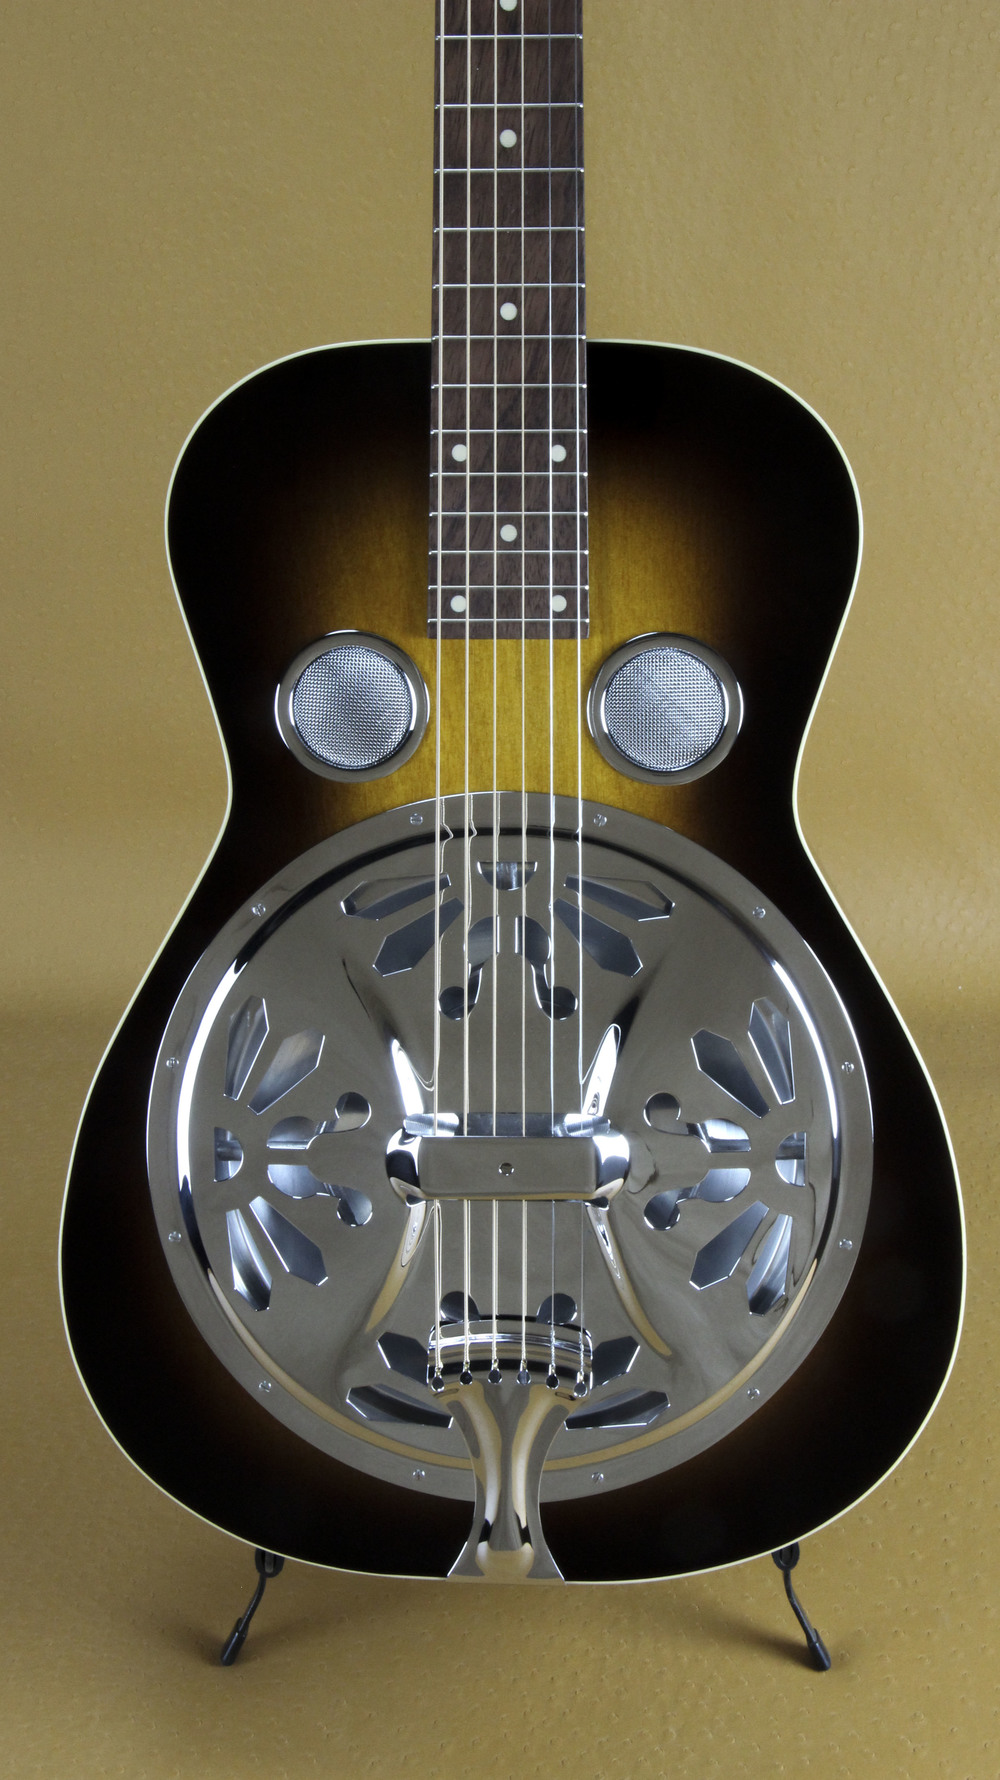 Lyre Coverplate on Beard Model 27